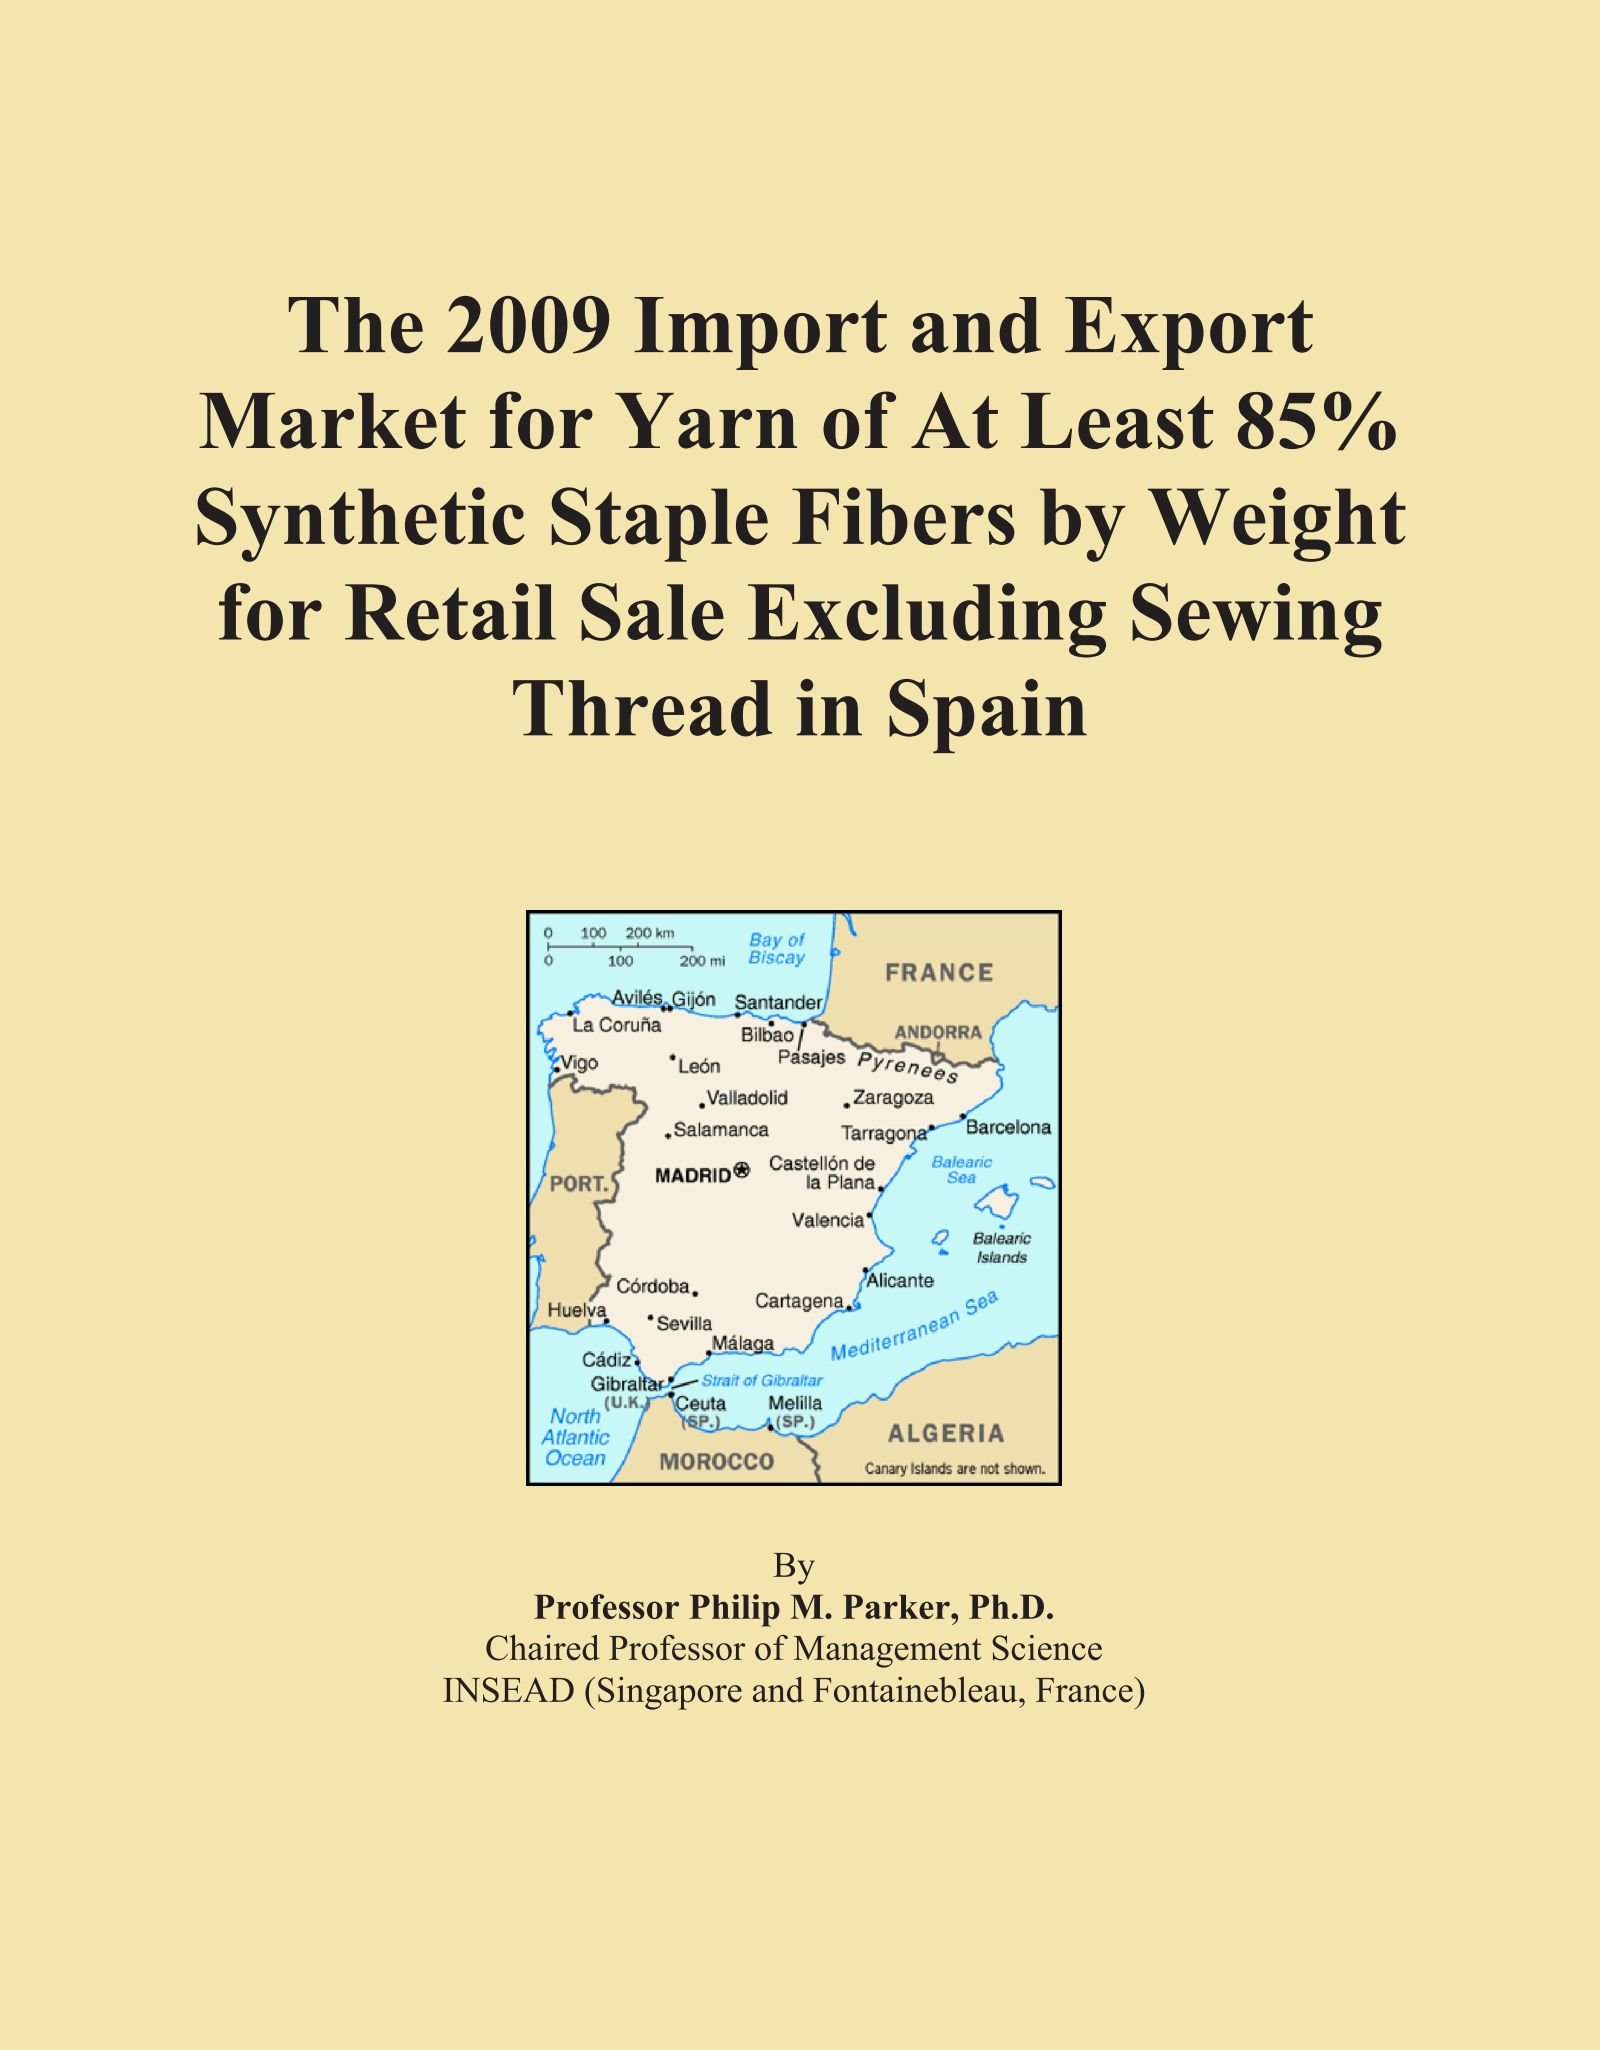 The 2009 Import and Export Market for Yarn of At Least 85% Synthetic Staple Fibers by Weight for Retail Sale Excluding Sewing Thread in Spain PDF